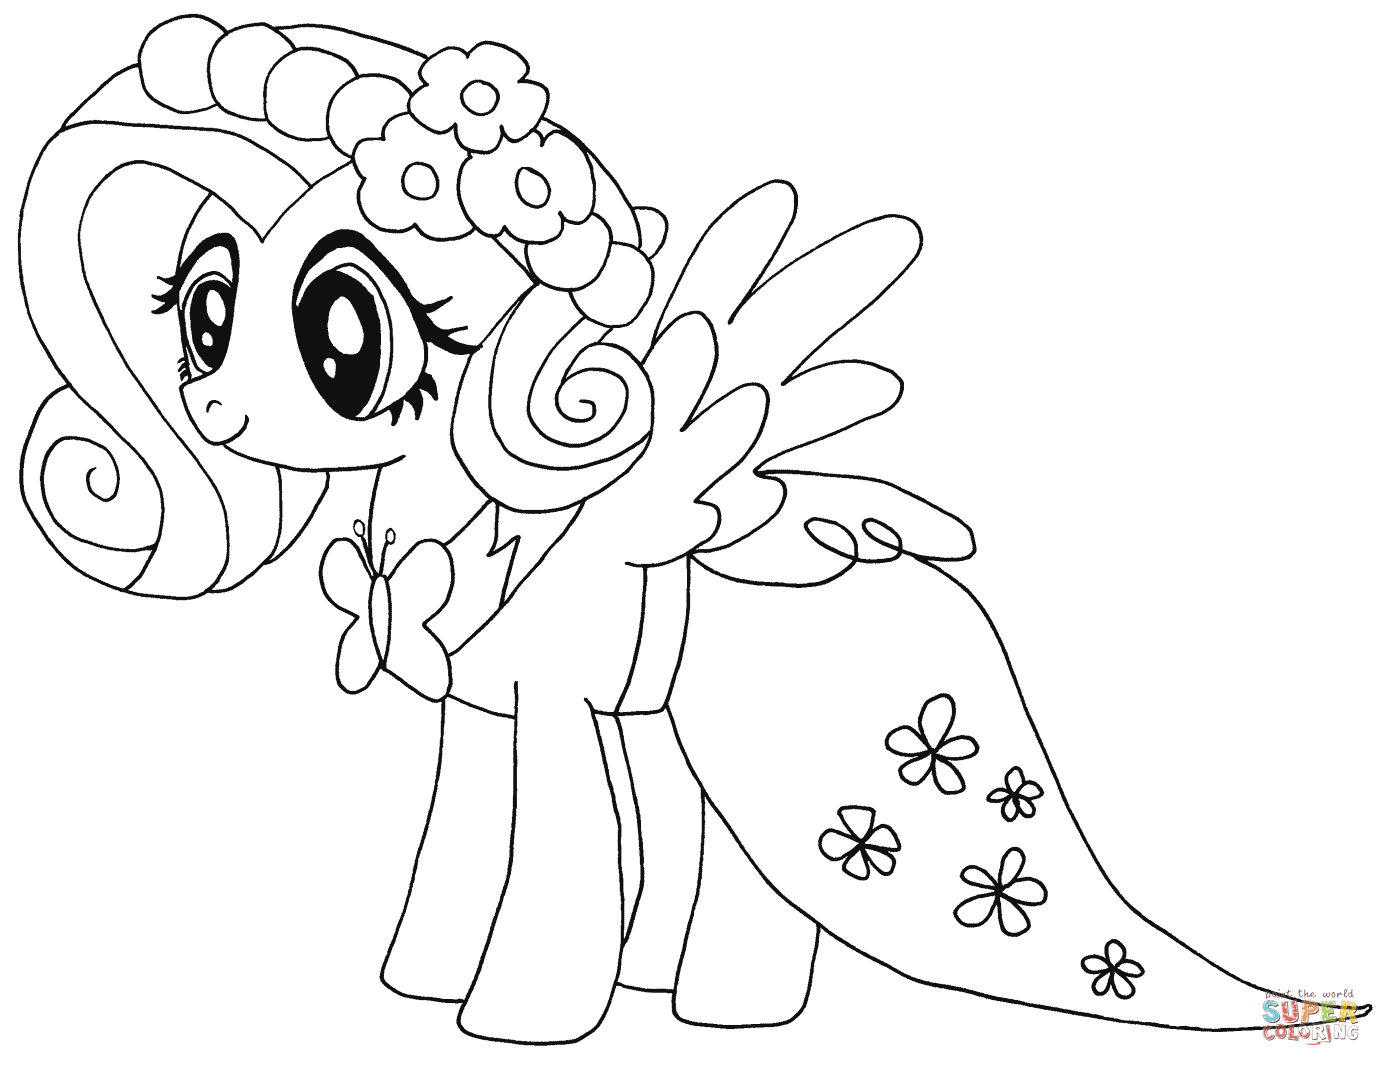 My Little Pony Fluttershy from My Little Pony